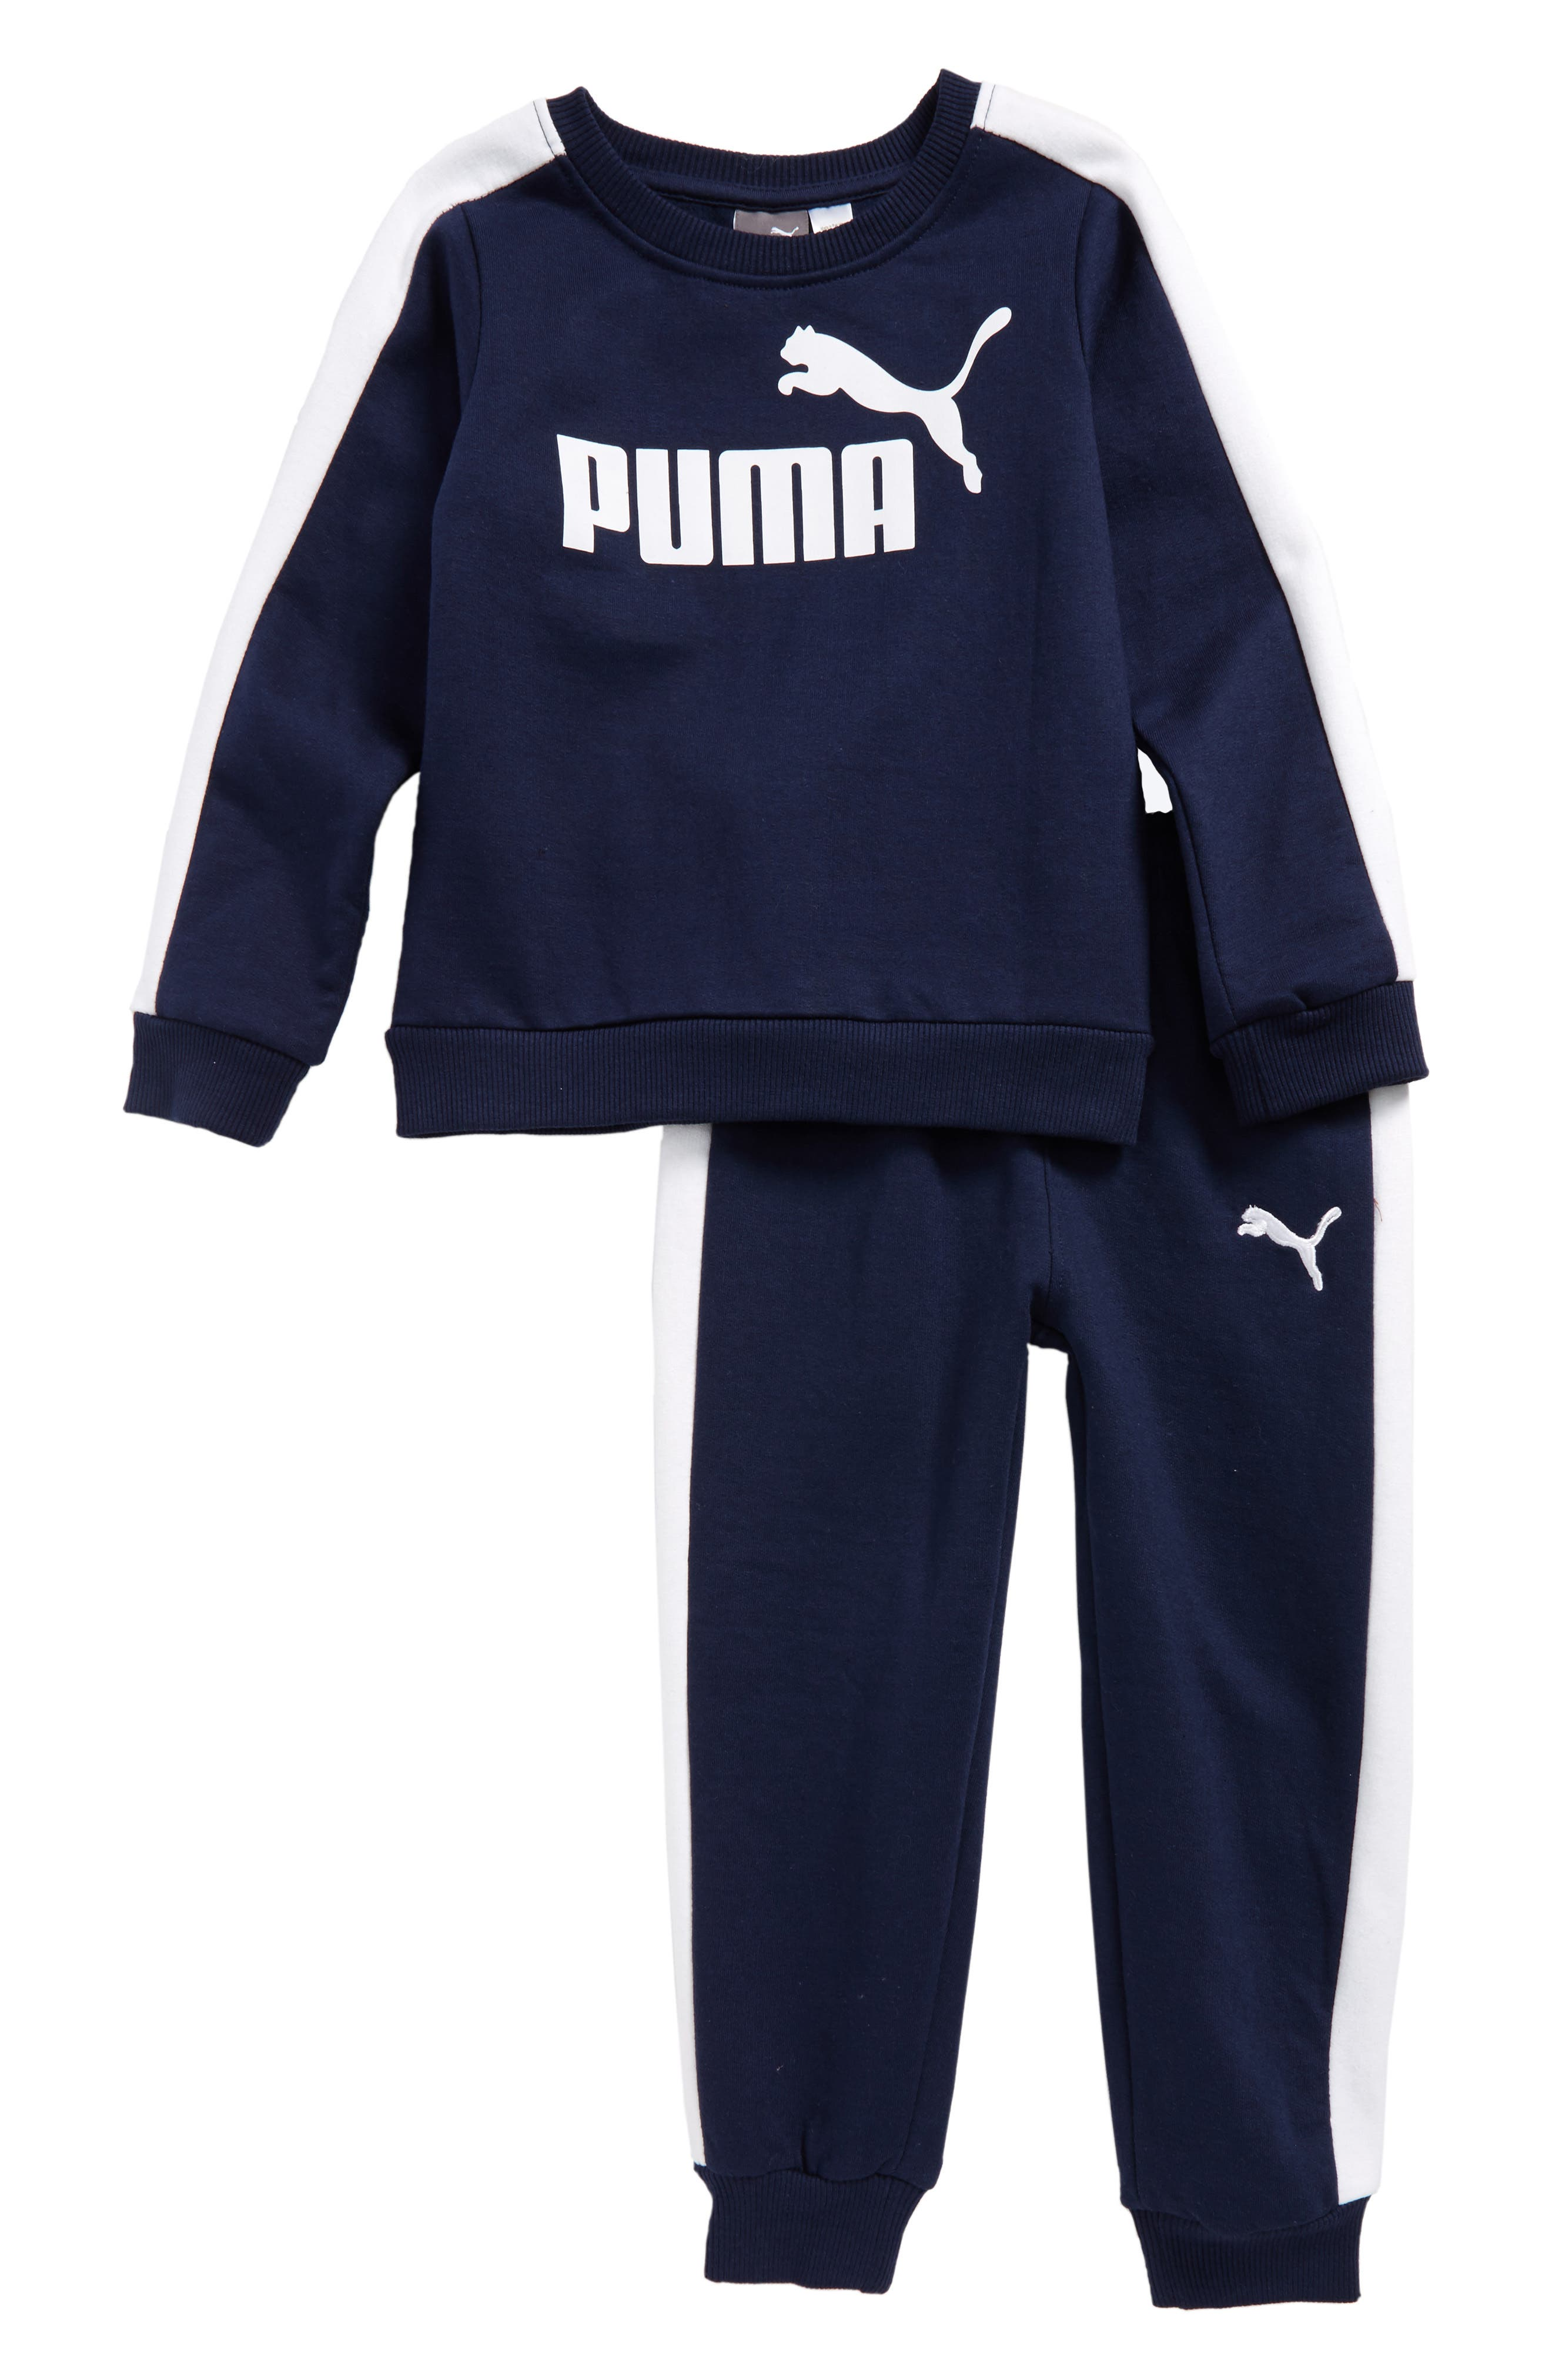 Sweatshirt & Sweatpants Set,                         Main,                         color, Deep Navy